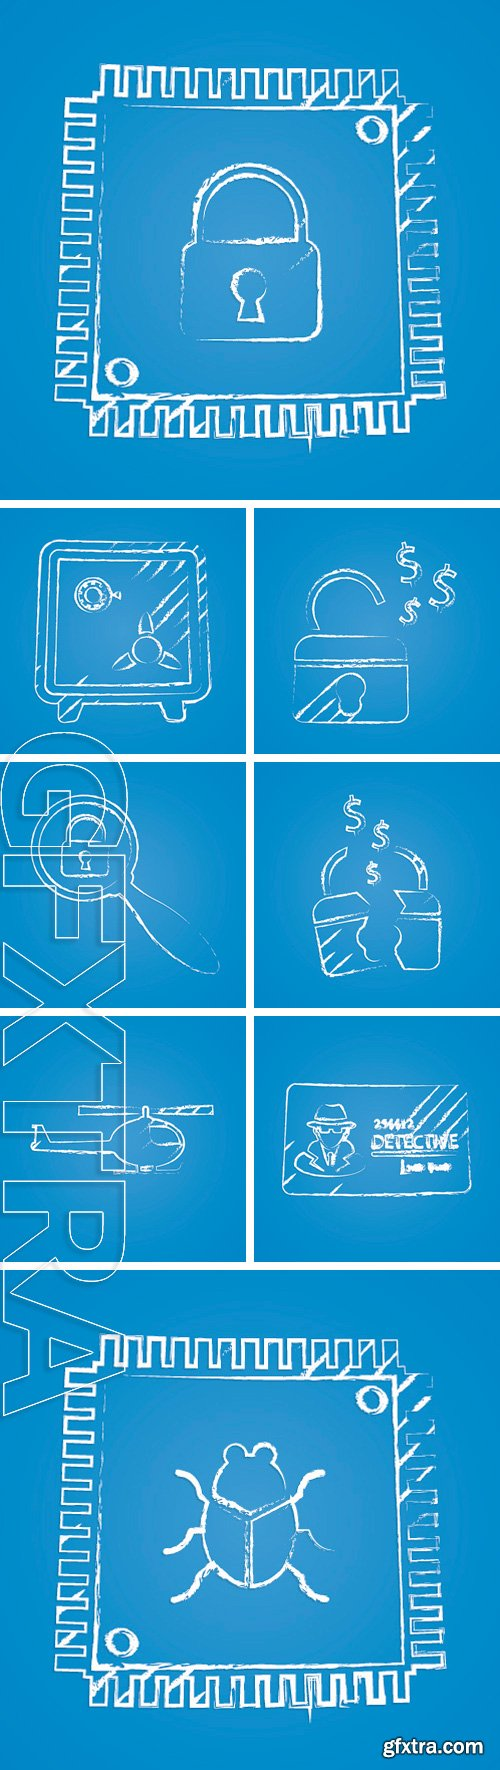 Stock Vectors - Vector illustration of business and finance icon